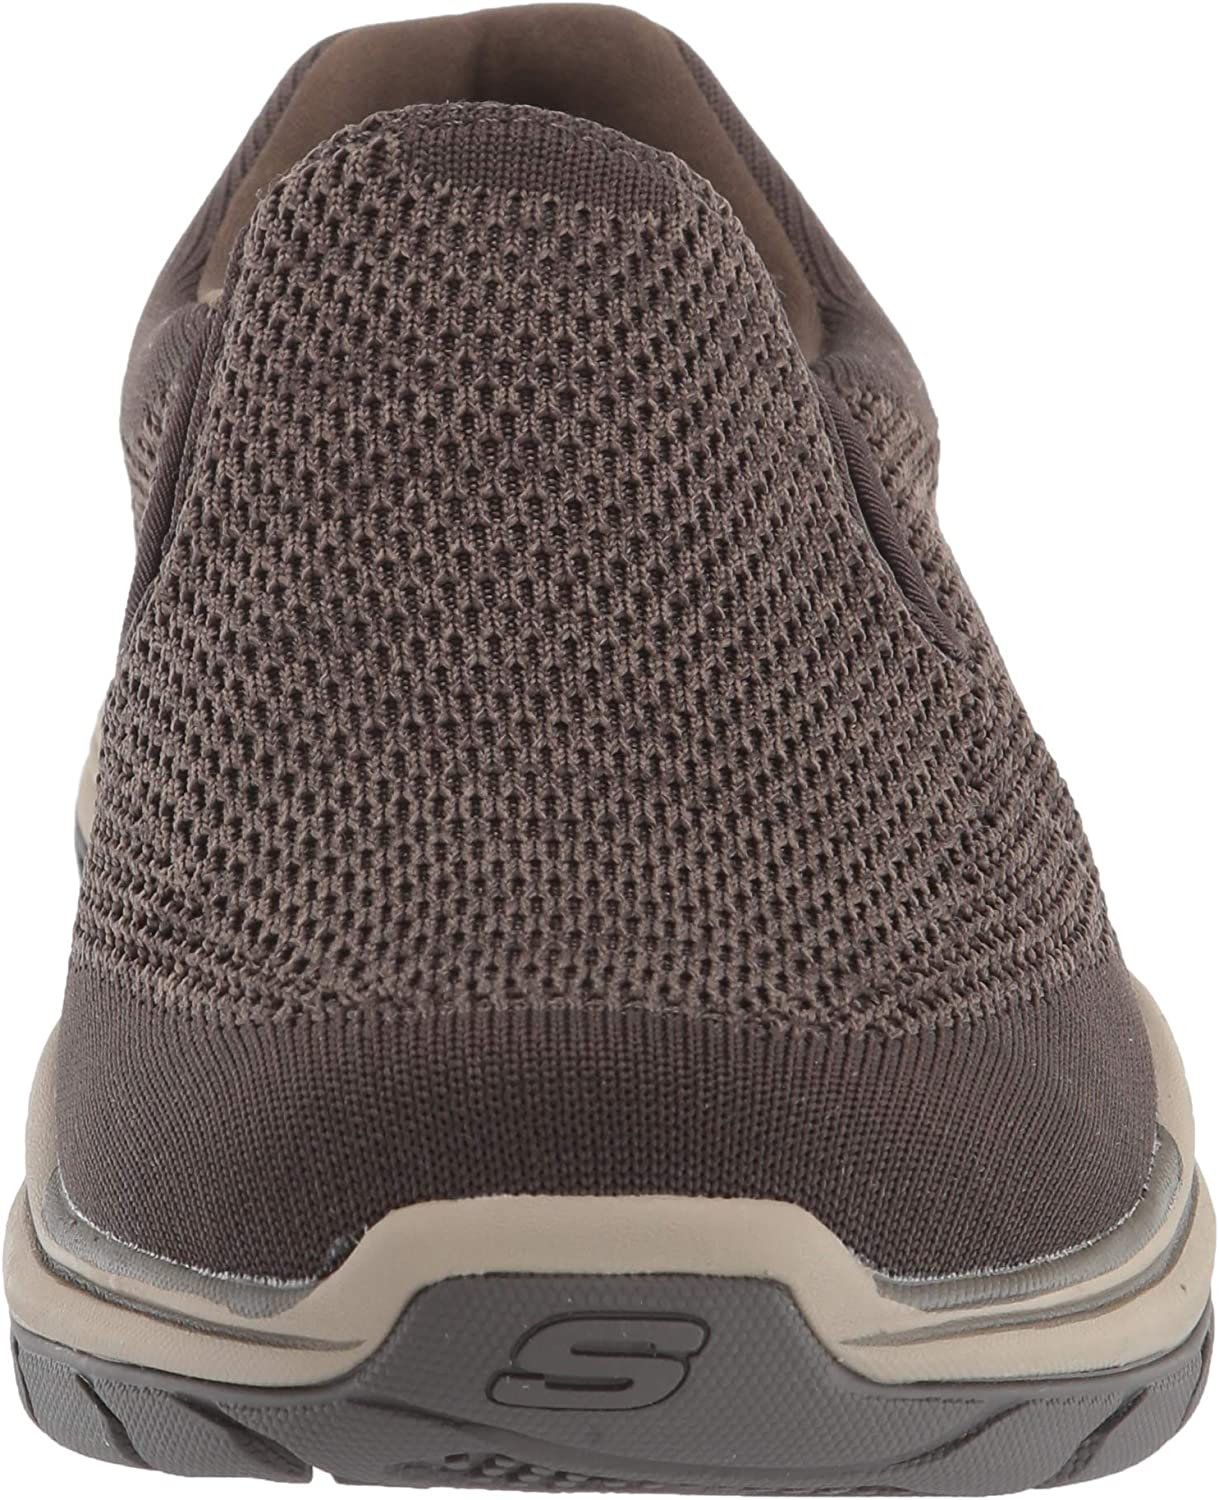 Skechers mens 204000 Expected 2.0 - Arago Slip on Canvas Olive Brown